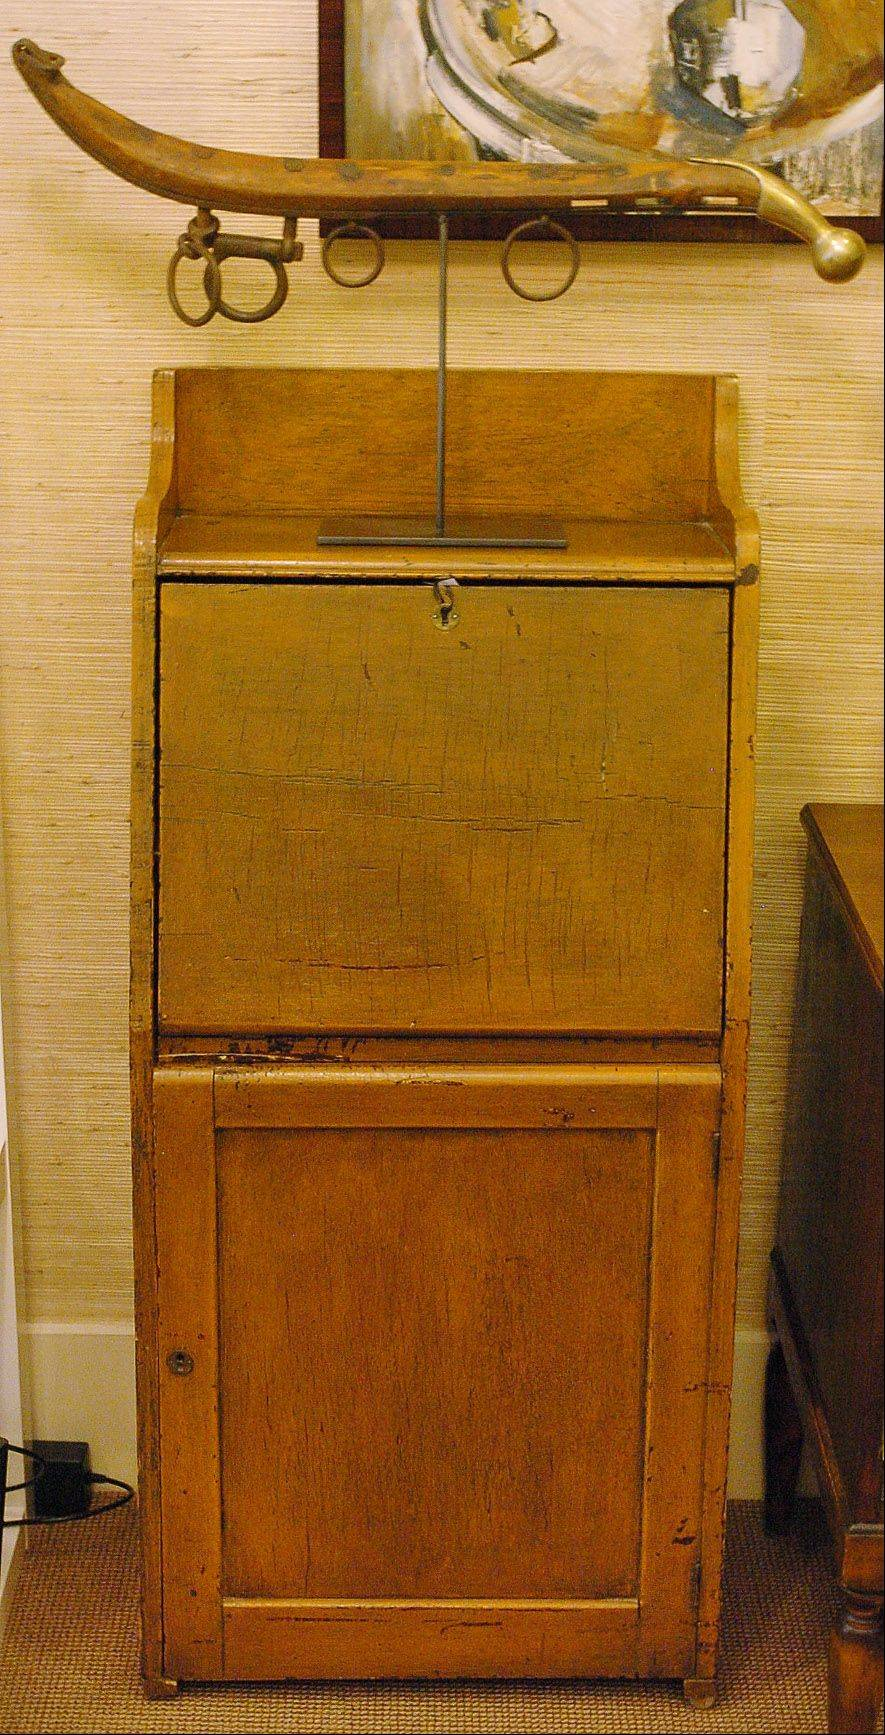 This vintage early American telephone cabinet was picked from Indiana in designer Missie Bender's shop in Glencoe called Vignette Home. Bender says she likes items with a history and sense of place.